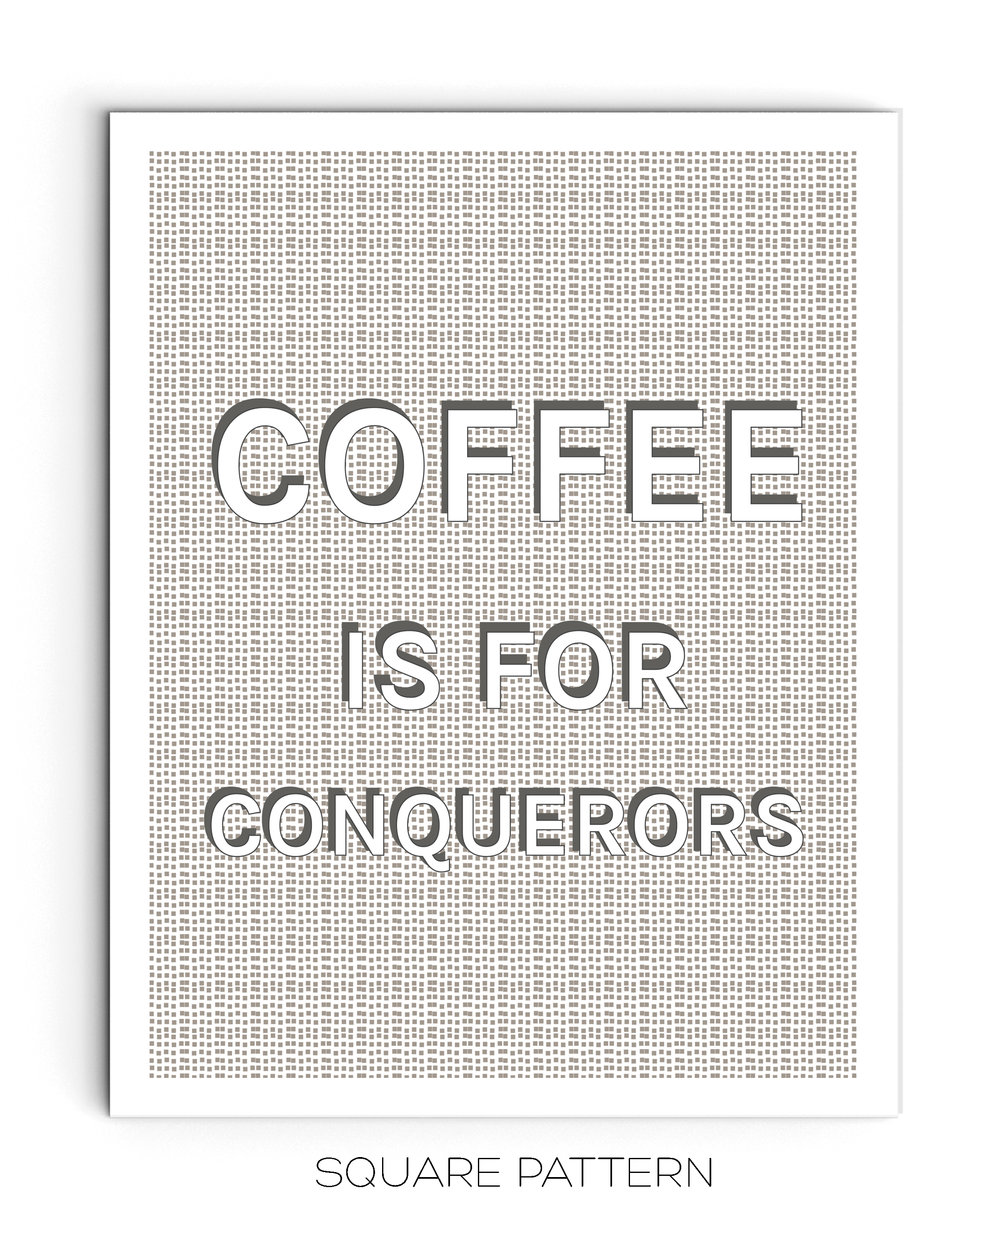 10-drop-shadow-coffee_01-quote-poster-mock-ups1.jpg